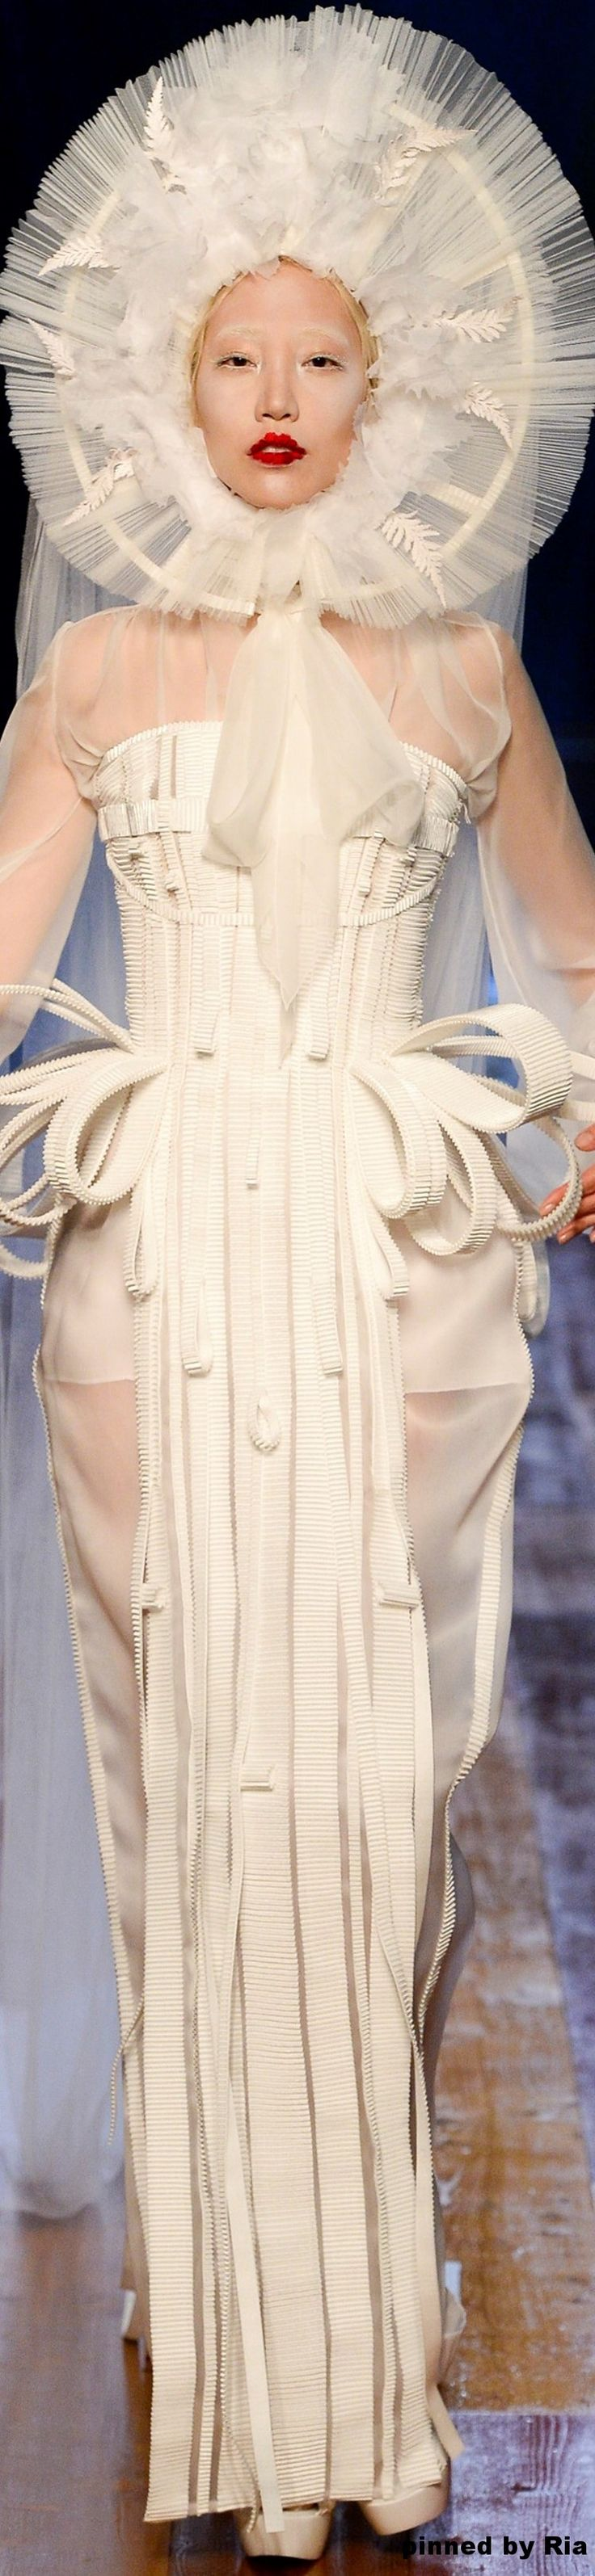 Jean Paul Gaultier FW 2016-17 Couture l Ria